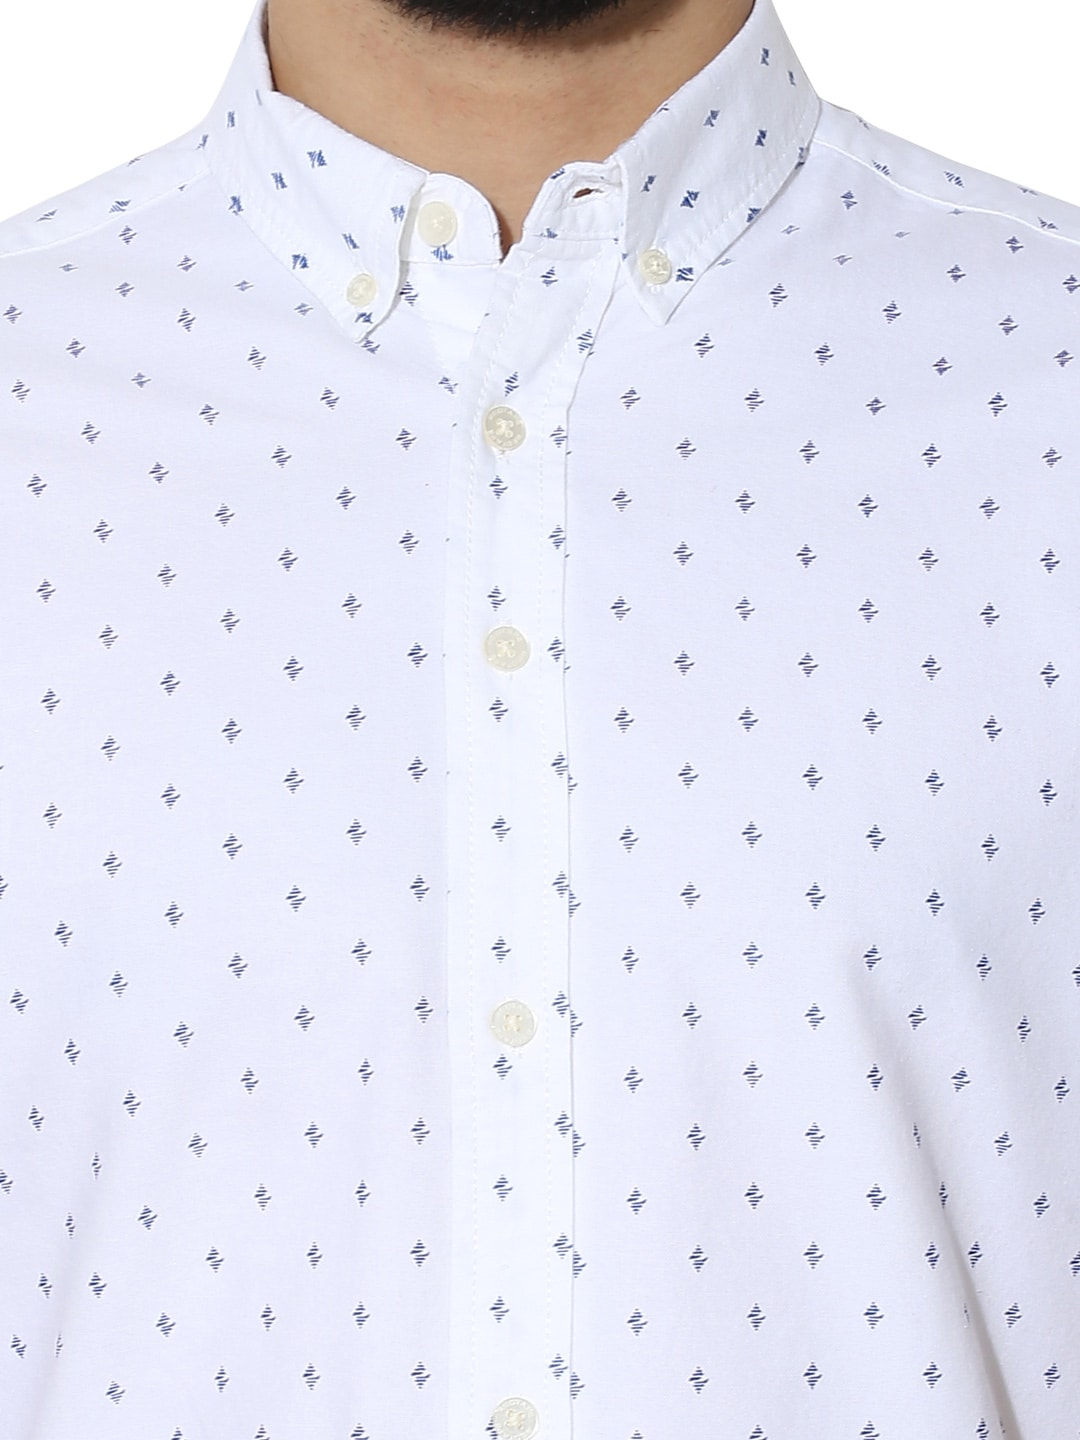 Polka Dots Shirts - Buy Polka Dots Shirts online in India